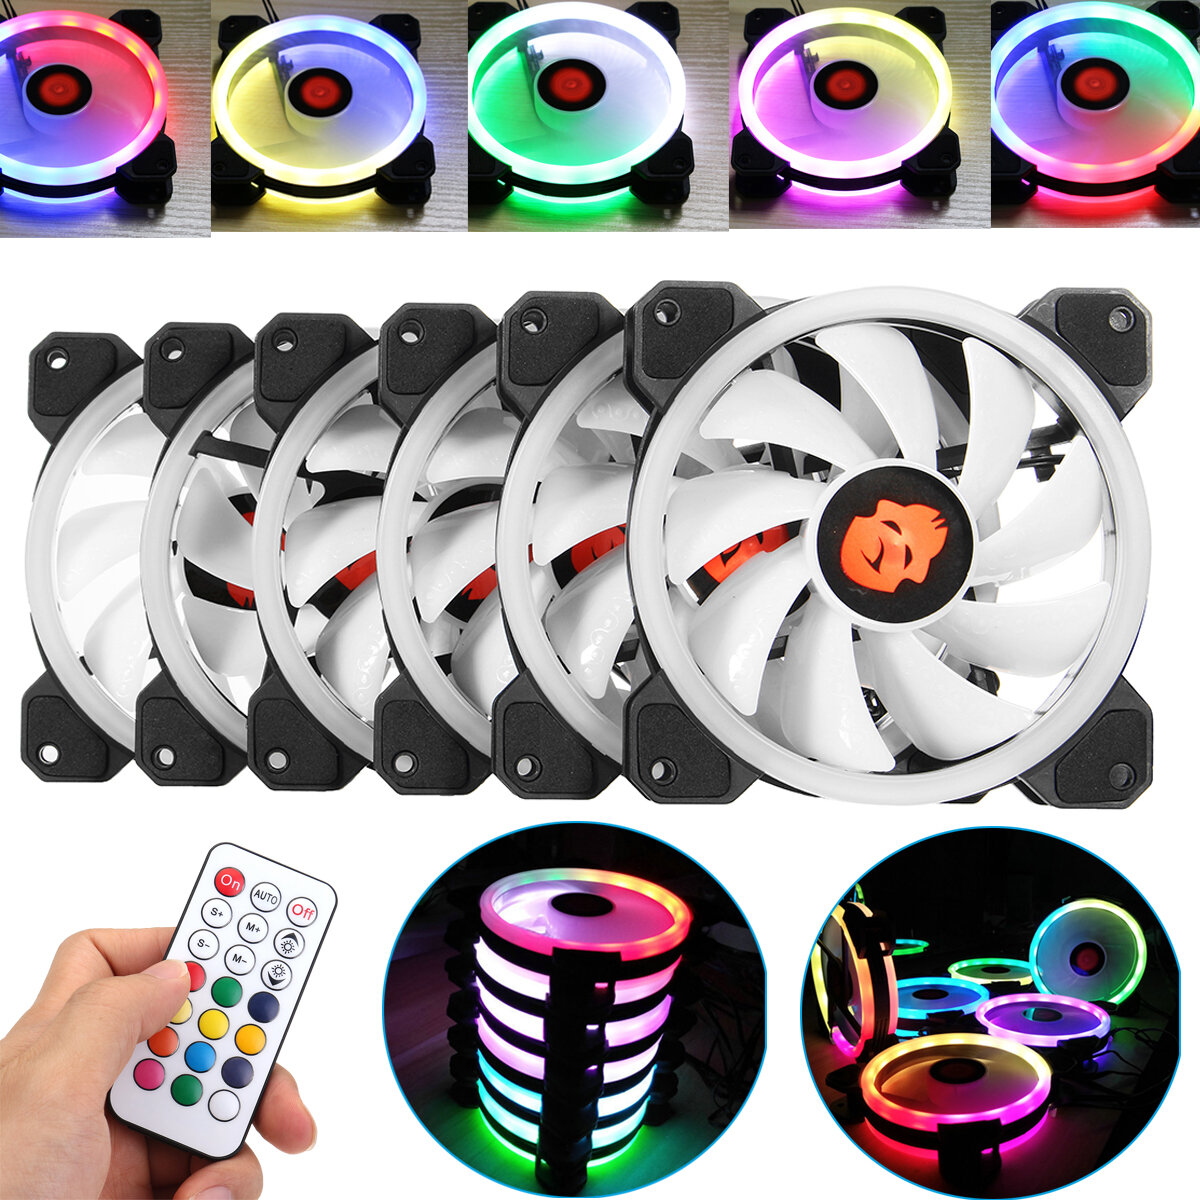 Coolmoon 6PCS 120mm Adjustable RGB LED Light Computer PC Case Cooling Fan with Remote